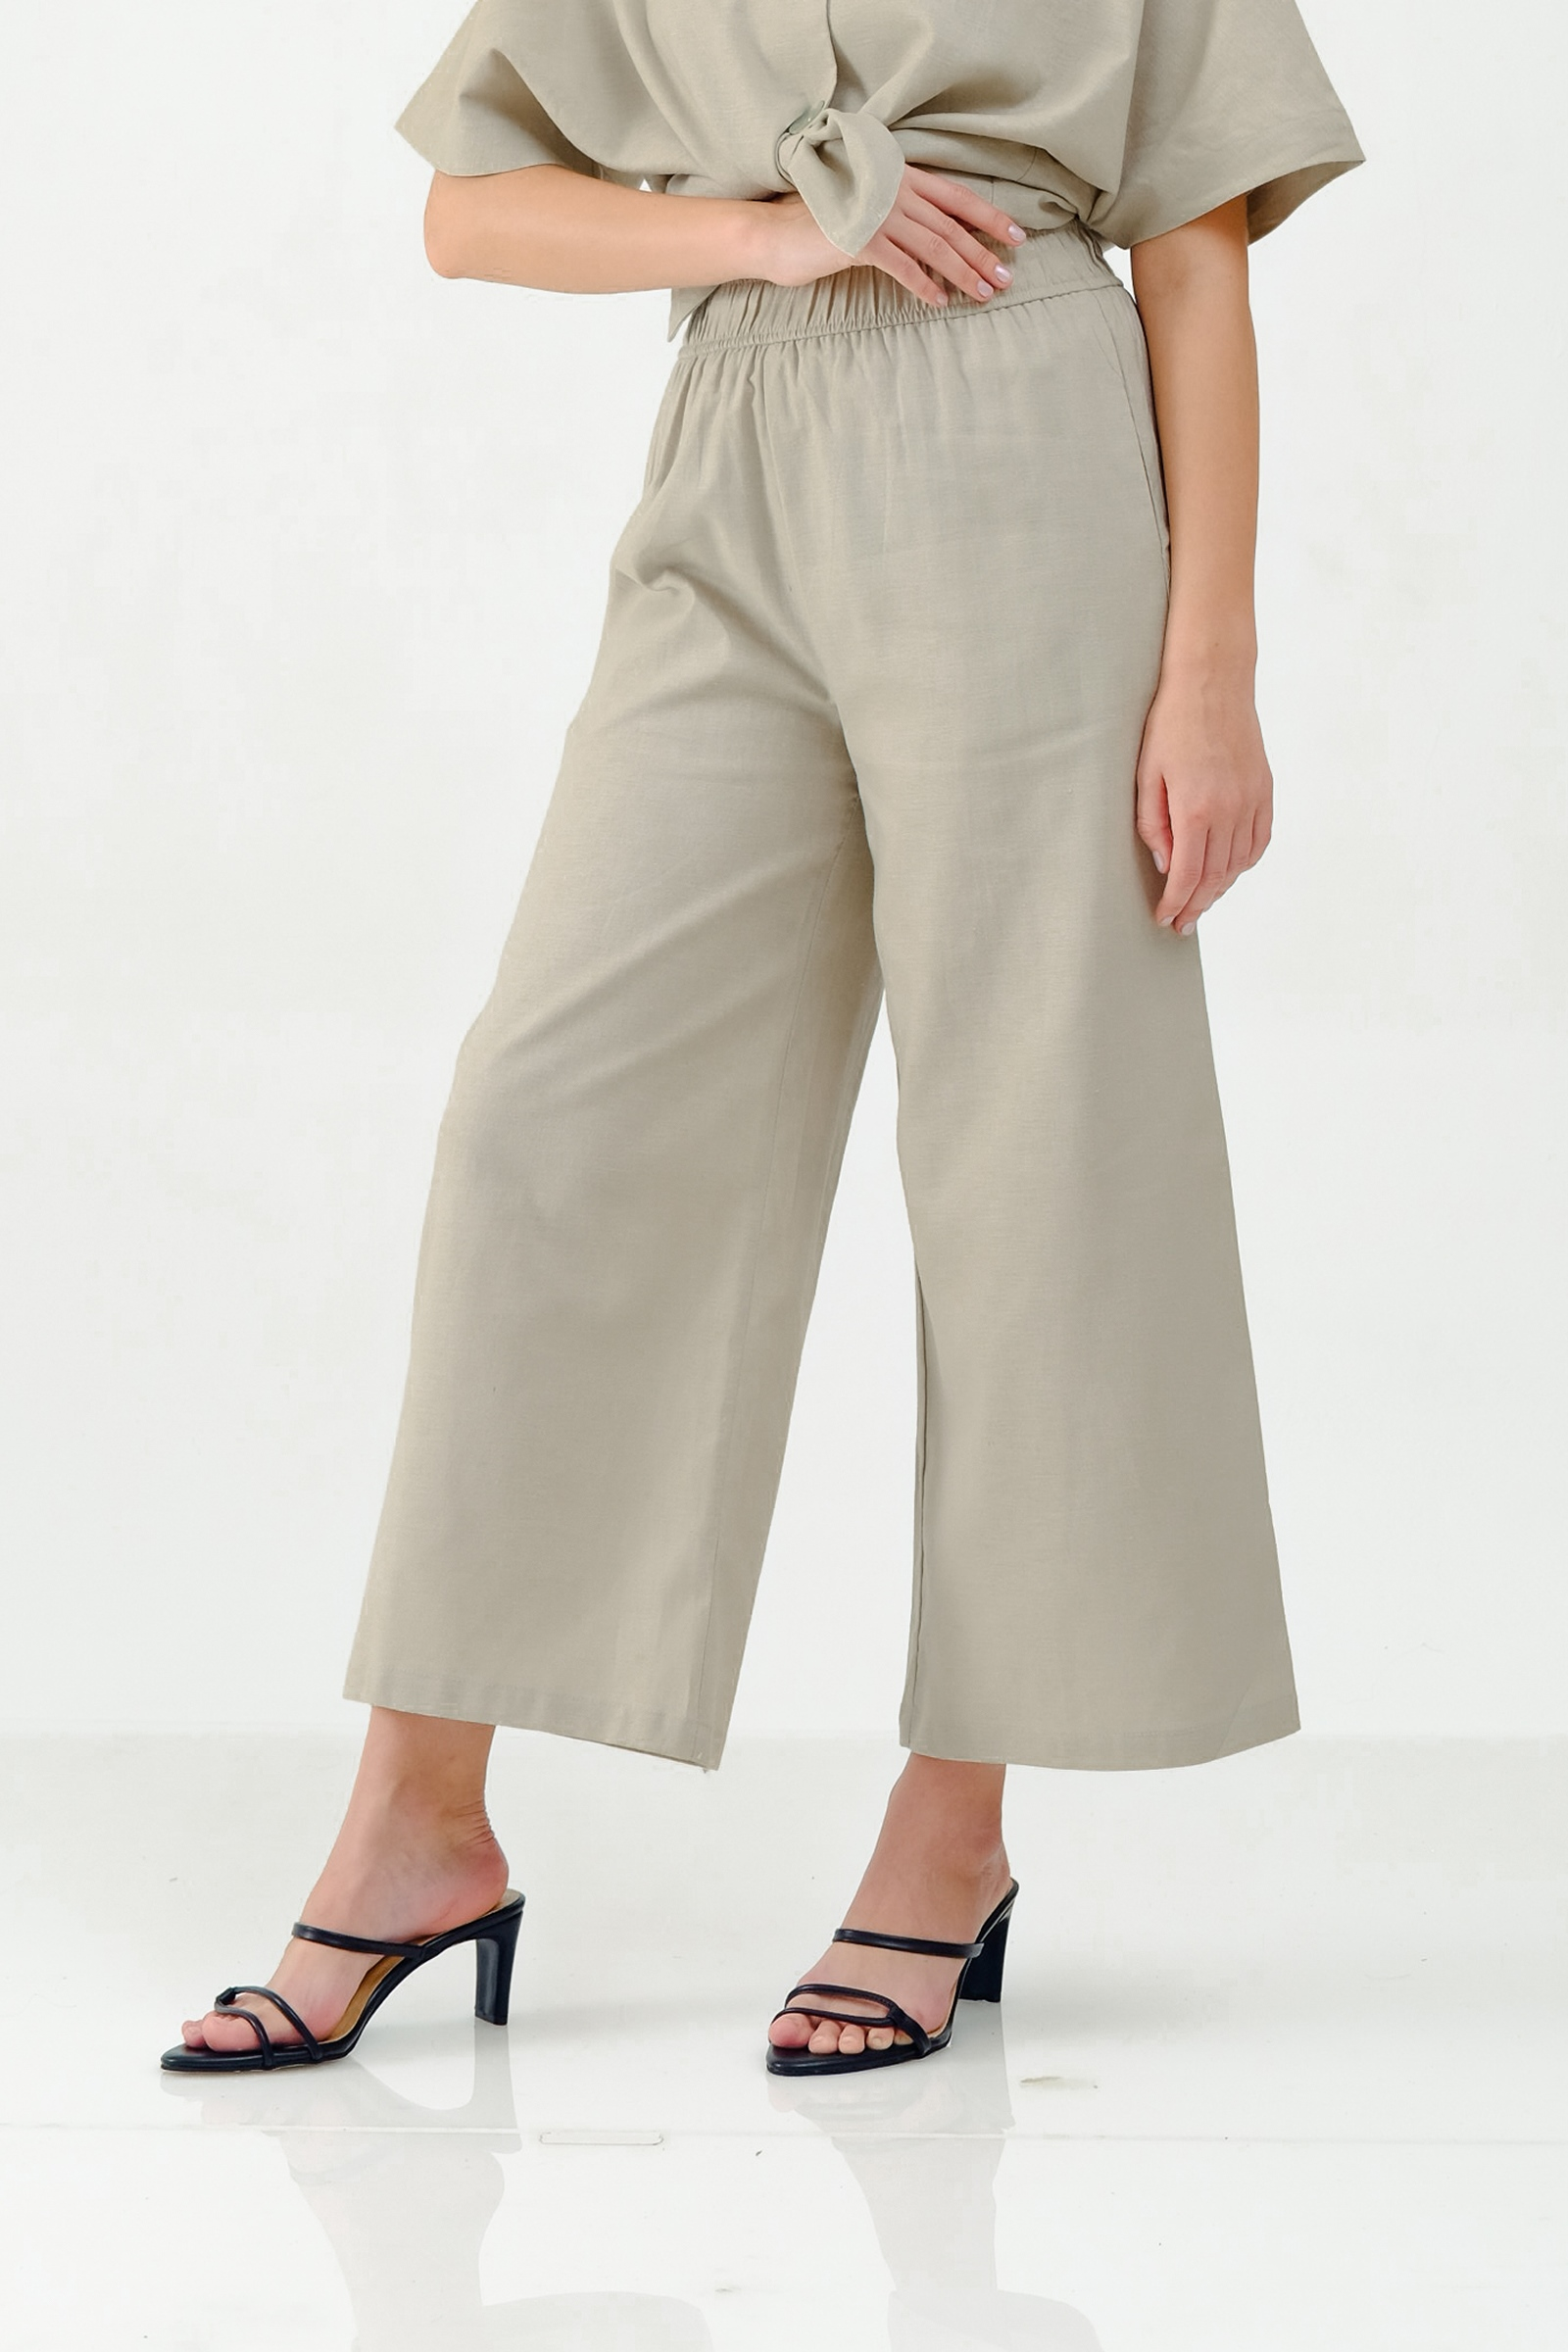 Picture of KORALLE PANTS BEIGE